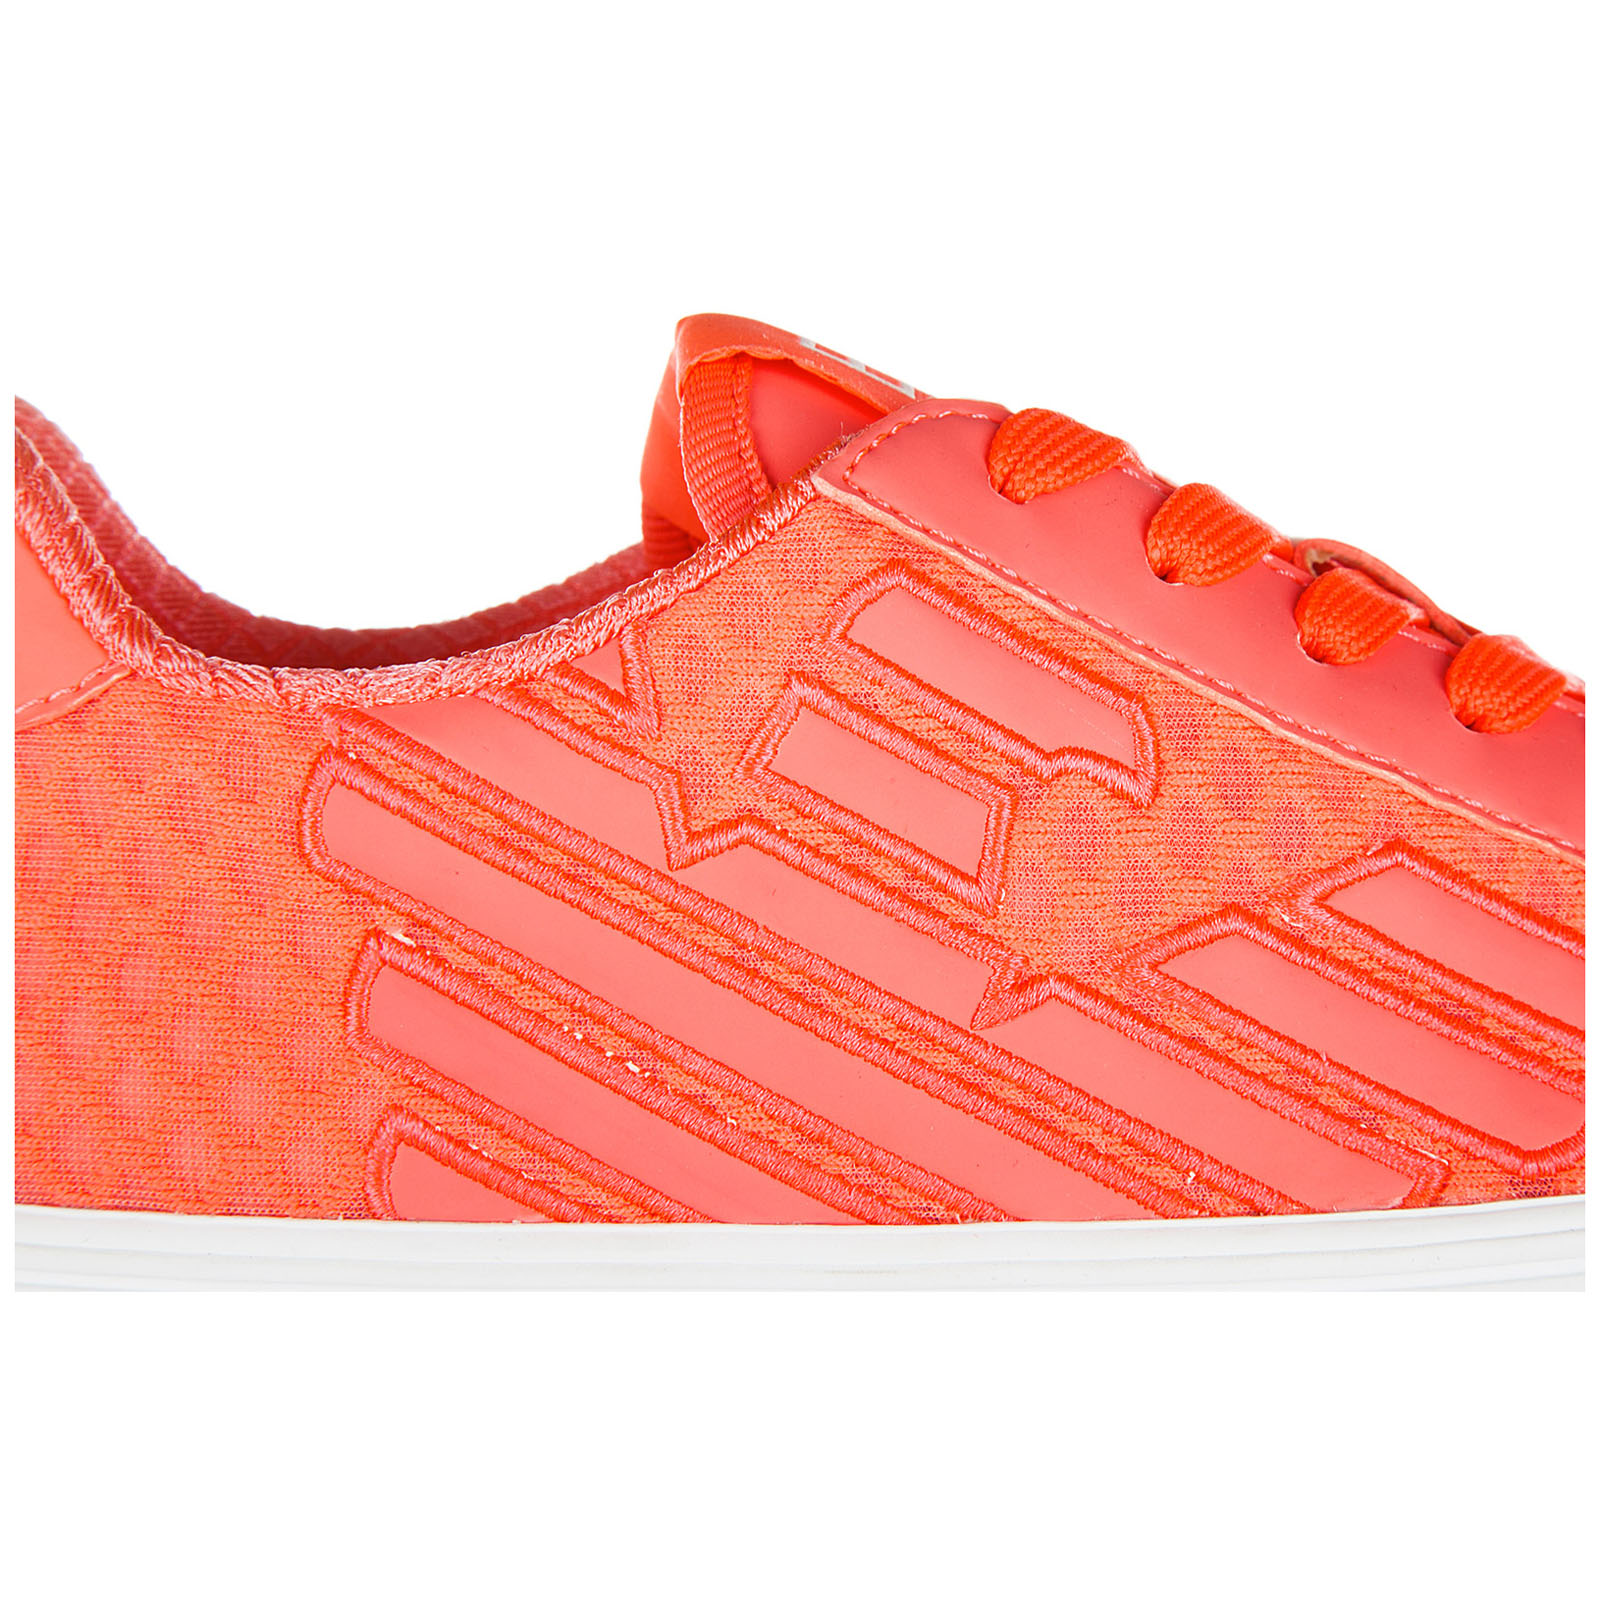 Chaussures baskets sneakers femme  pride 3d mesh